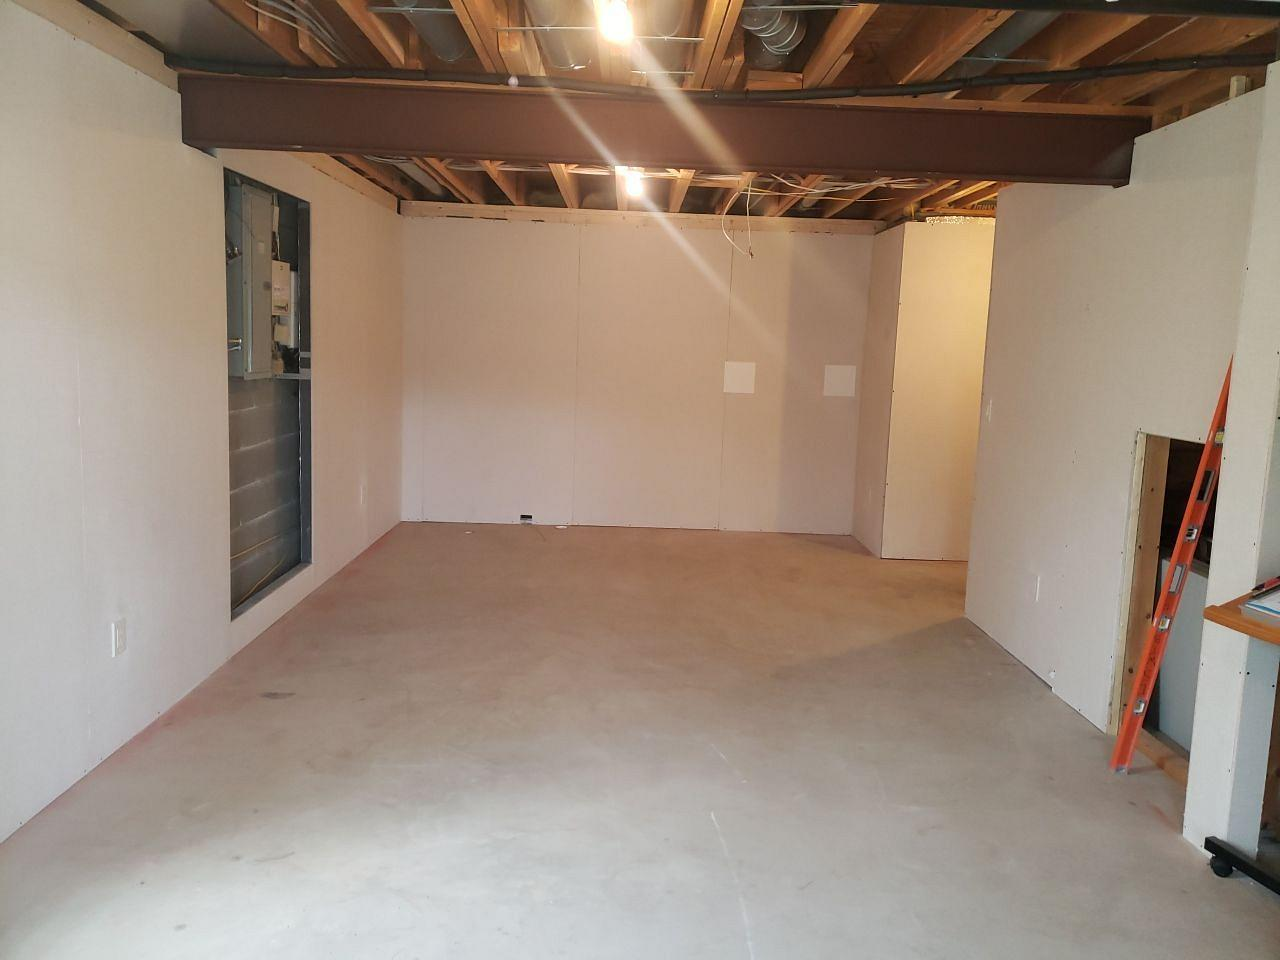 Awesome Basement Transformation in Monroeville, PA! - Before Photo